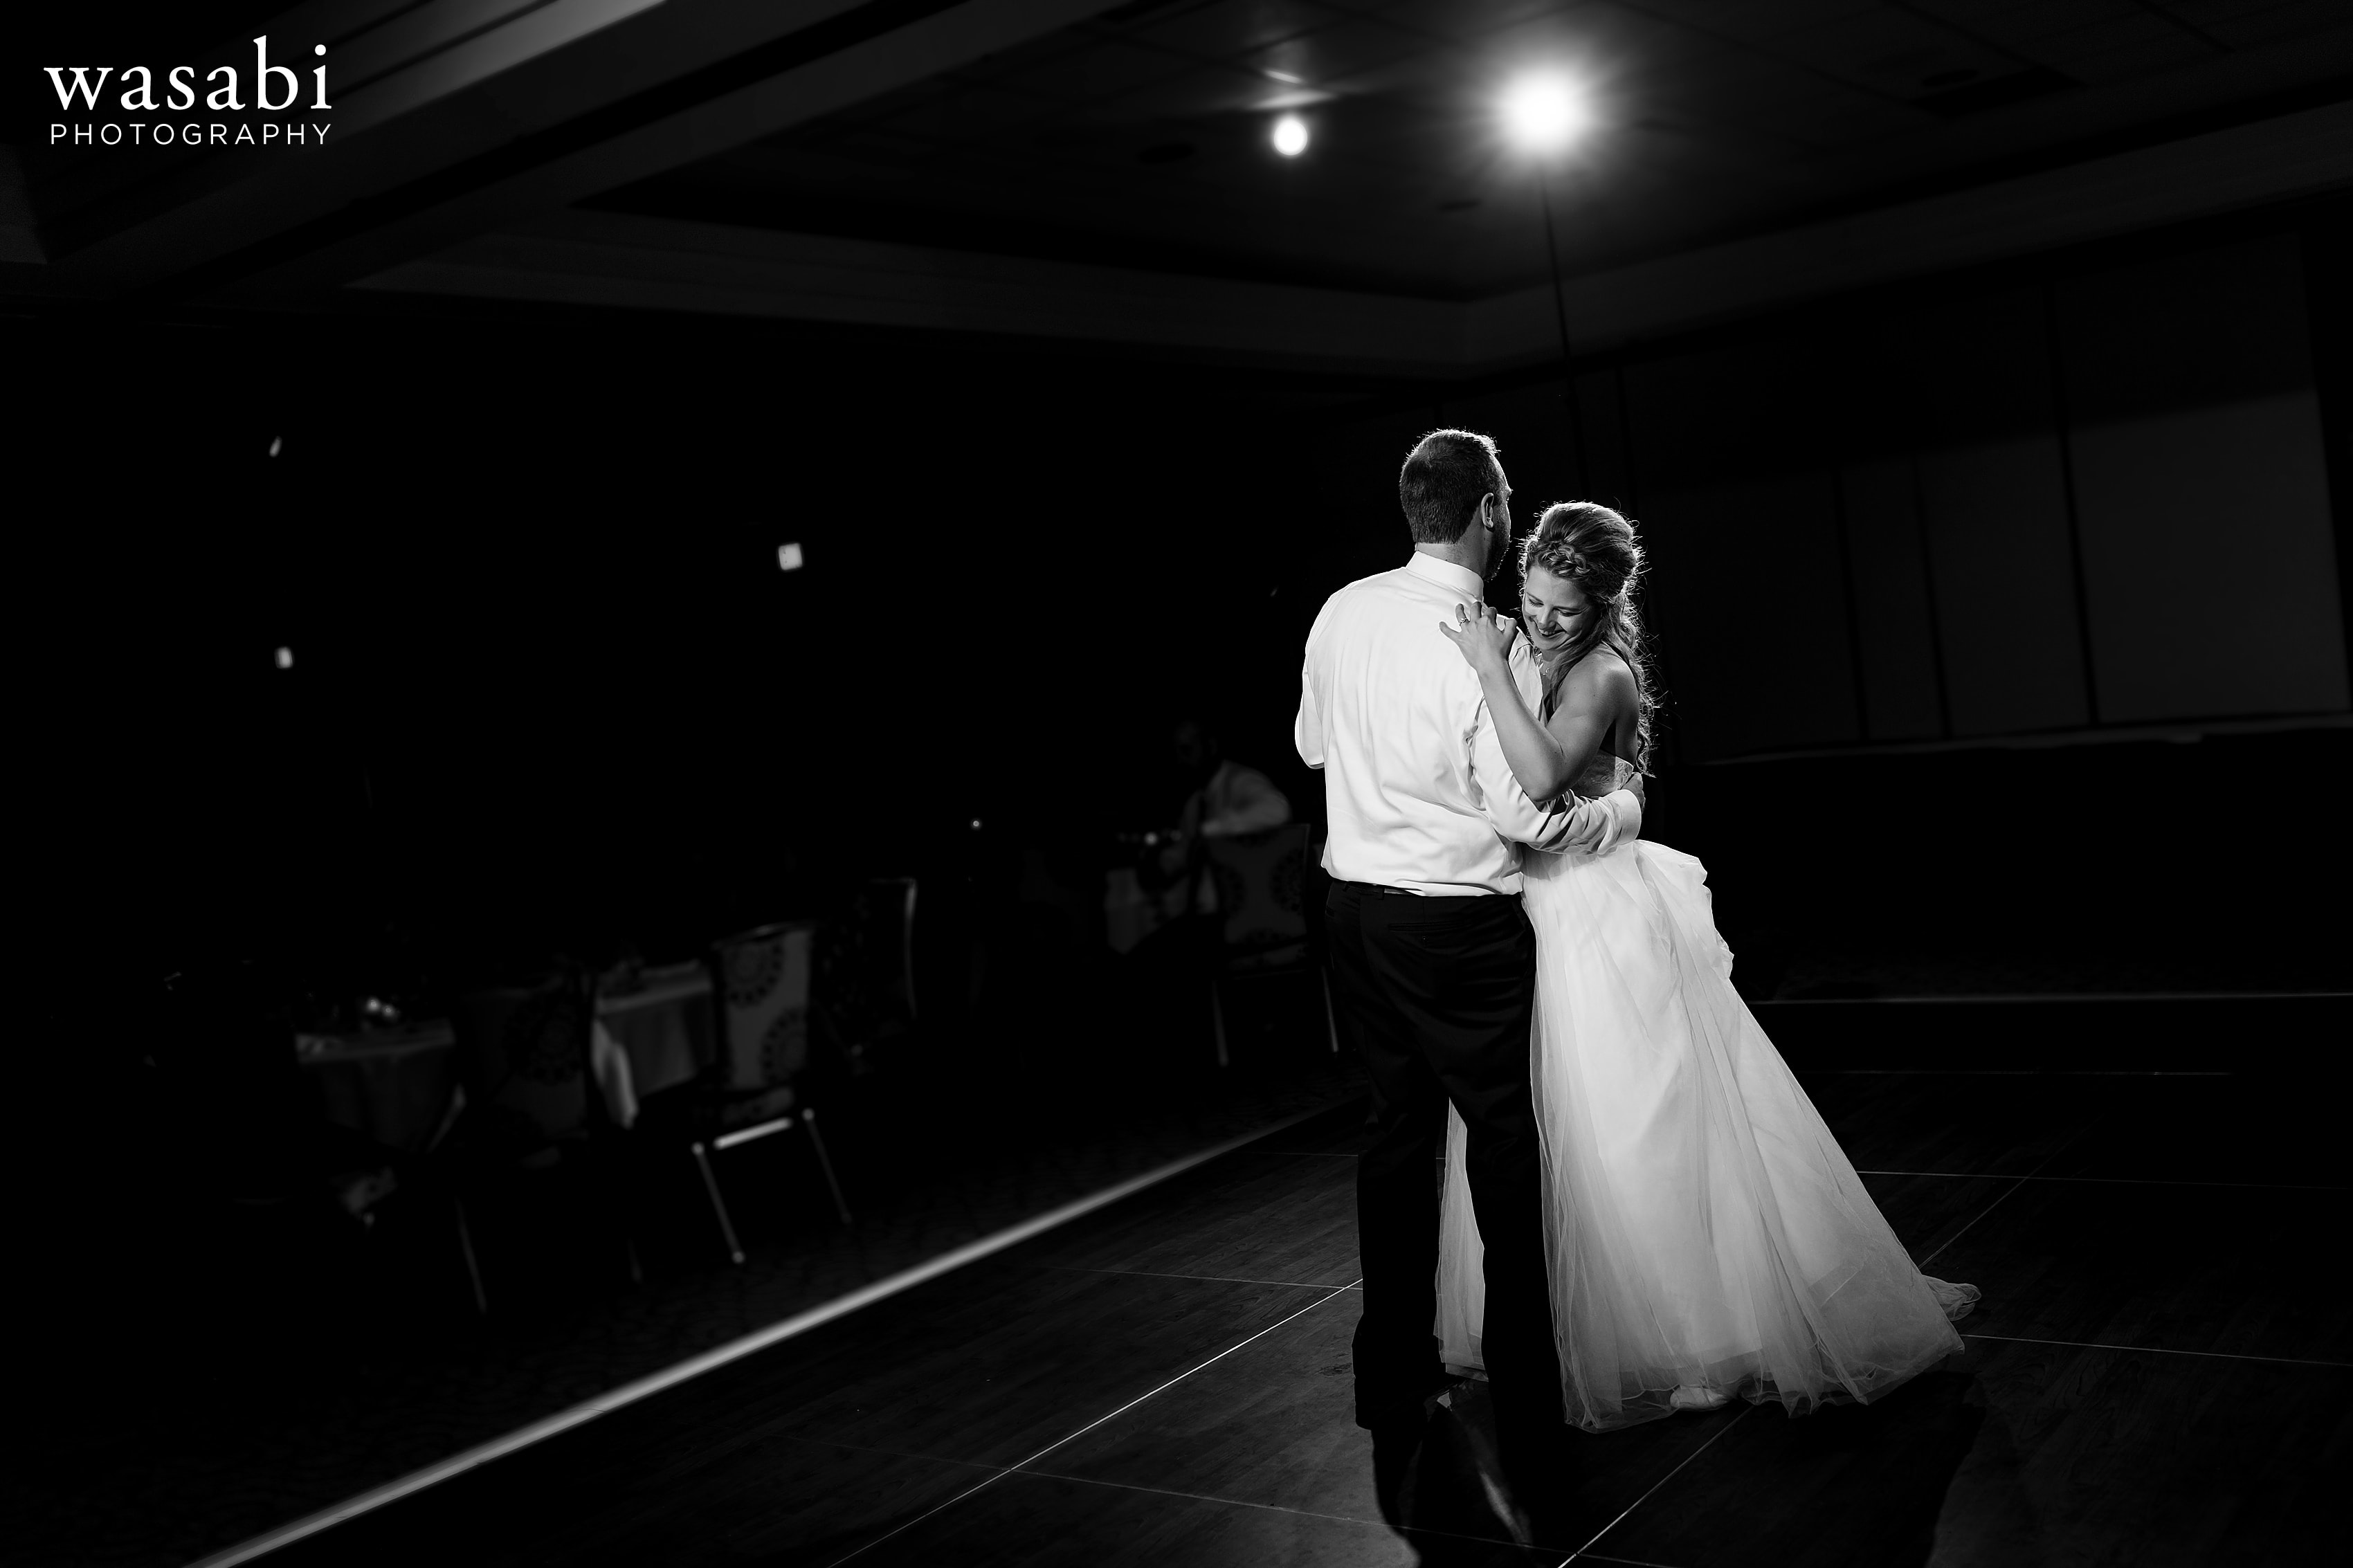 bride and groom share a first dance during a wedding reception at Eberhard Center in downtown Grand Rapids